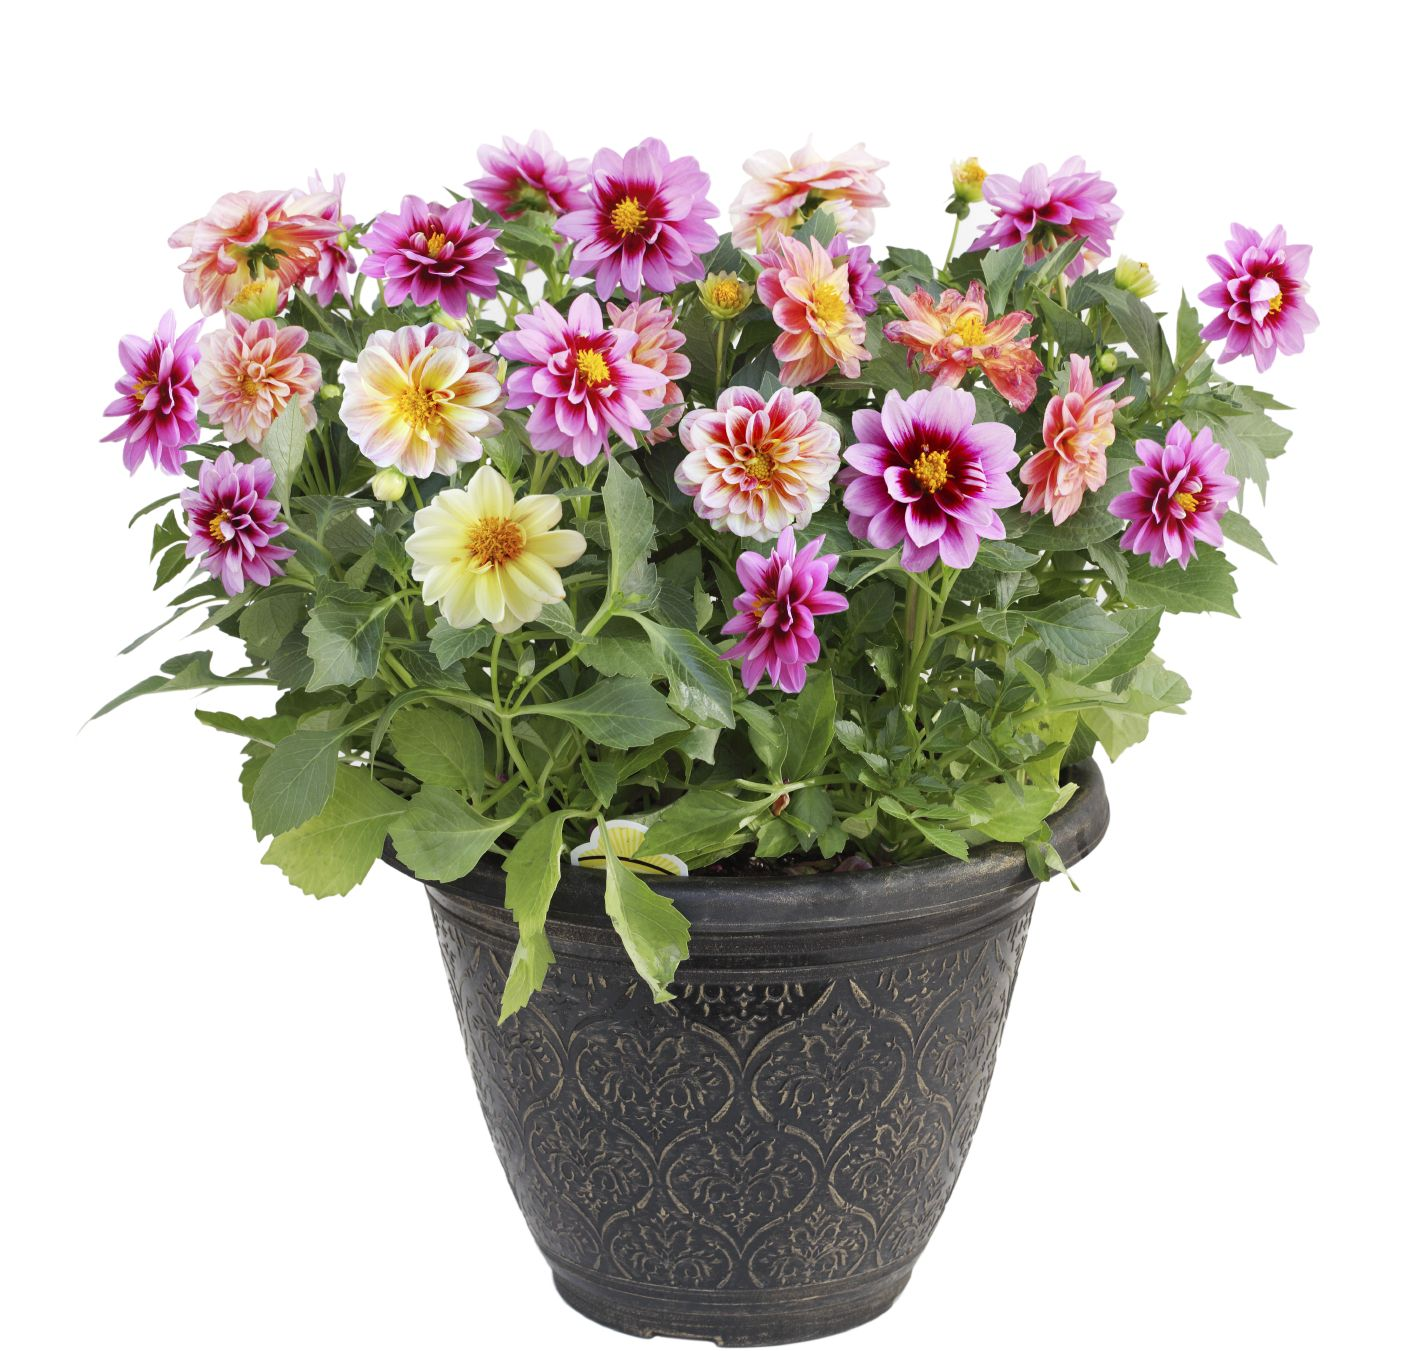 Can Dahlias Be Grown In Containers Learn How To Grow Dahlias In Containers Growing Dahlias Planting Dahlias Container Flowers